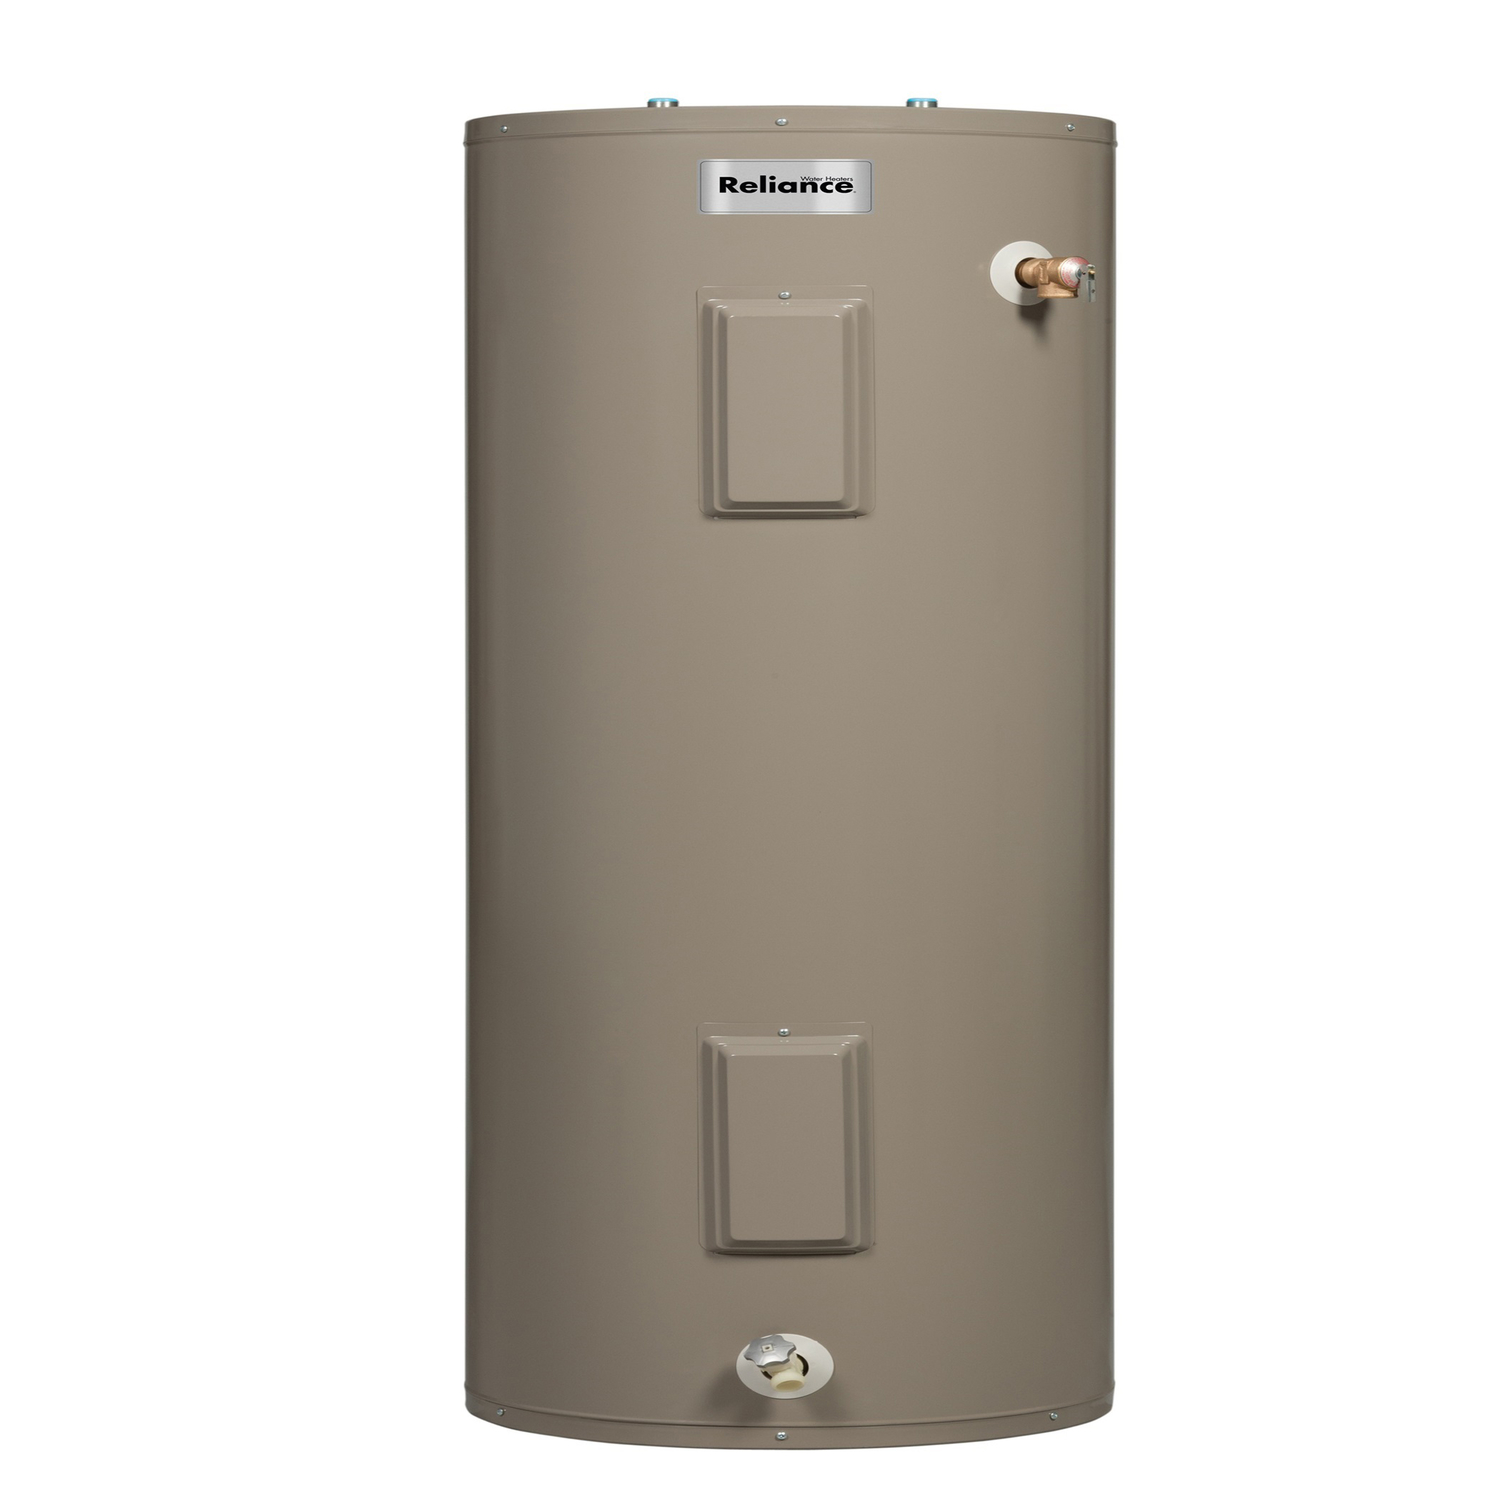 Reliance  Electric  Water Heater  39-3/4 in. H x 22 in. W x 22 in. L 30 gal.